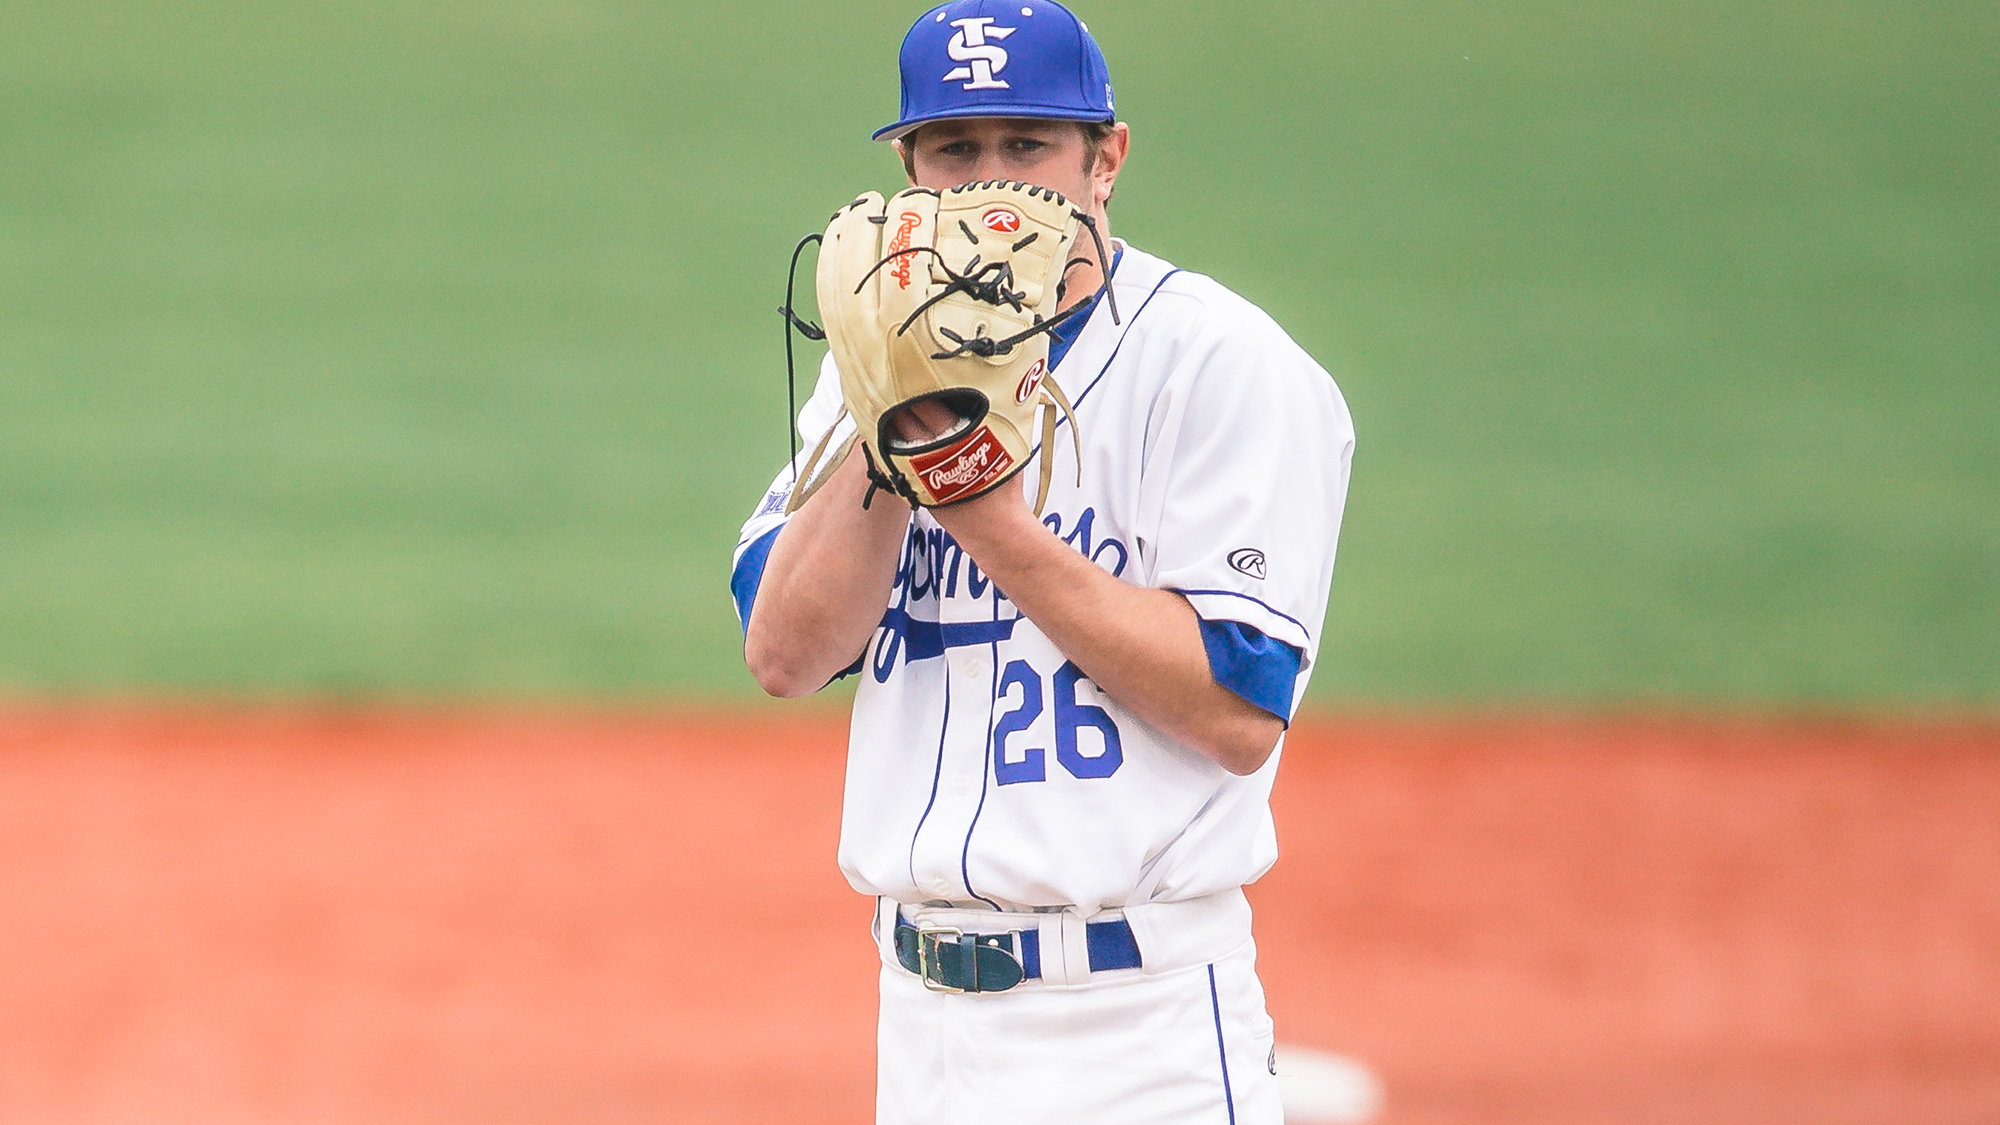 Great Lake Canadians alum Tyler Whitbread (Camlachie, Ont.) allowed just one run and one hit in six innings to lead the Indiana State Sycamores to a 6-1 win over Illinois State in his start on Sunday. Photo: Indiana State Athletics